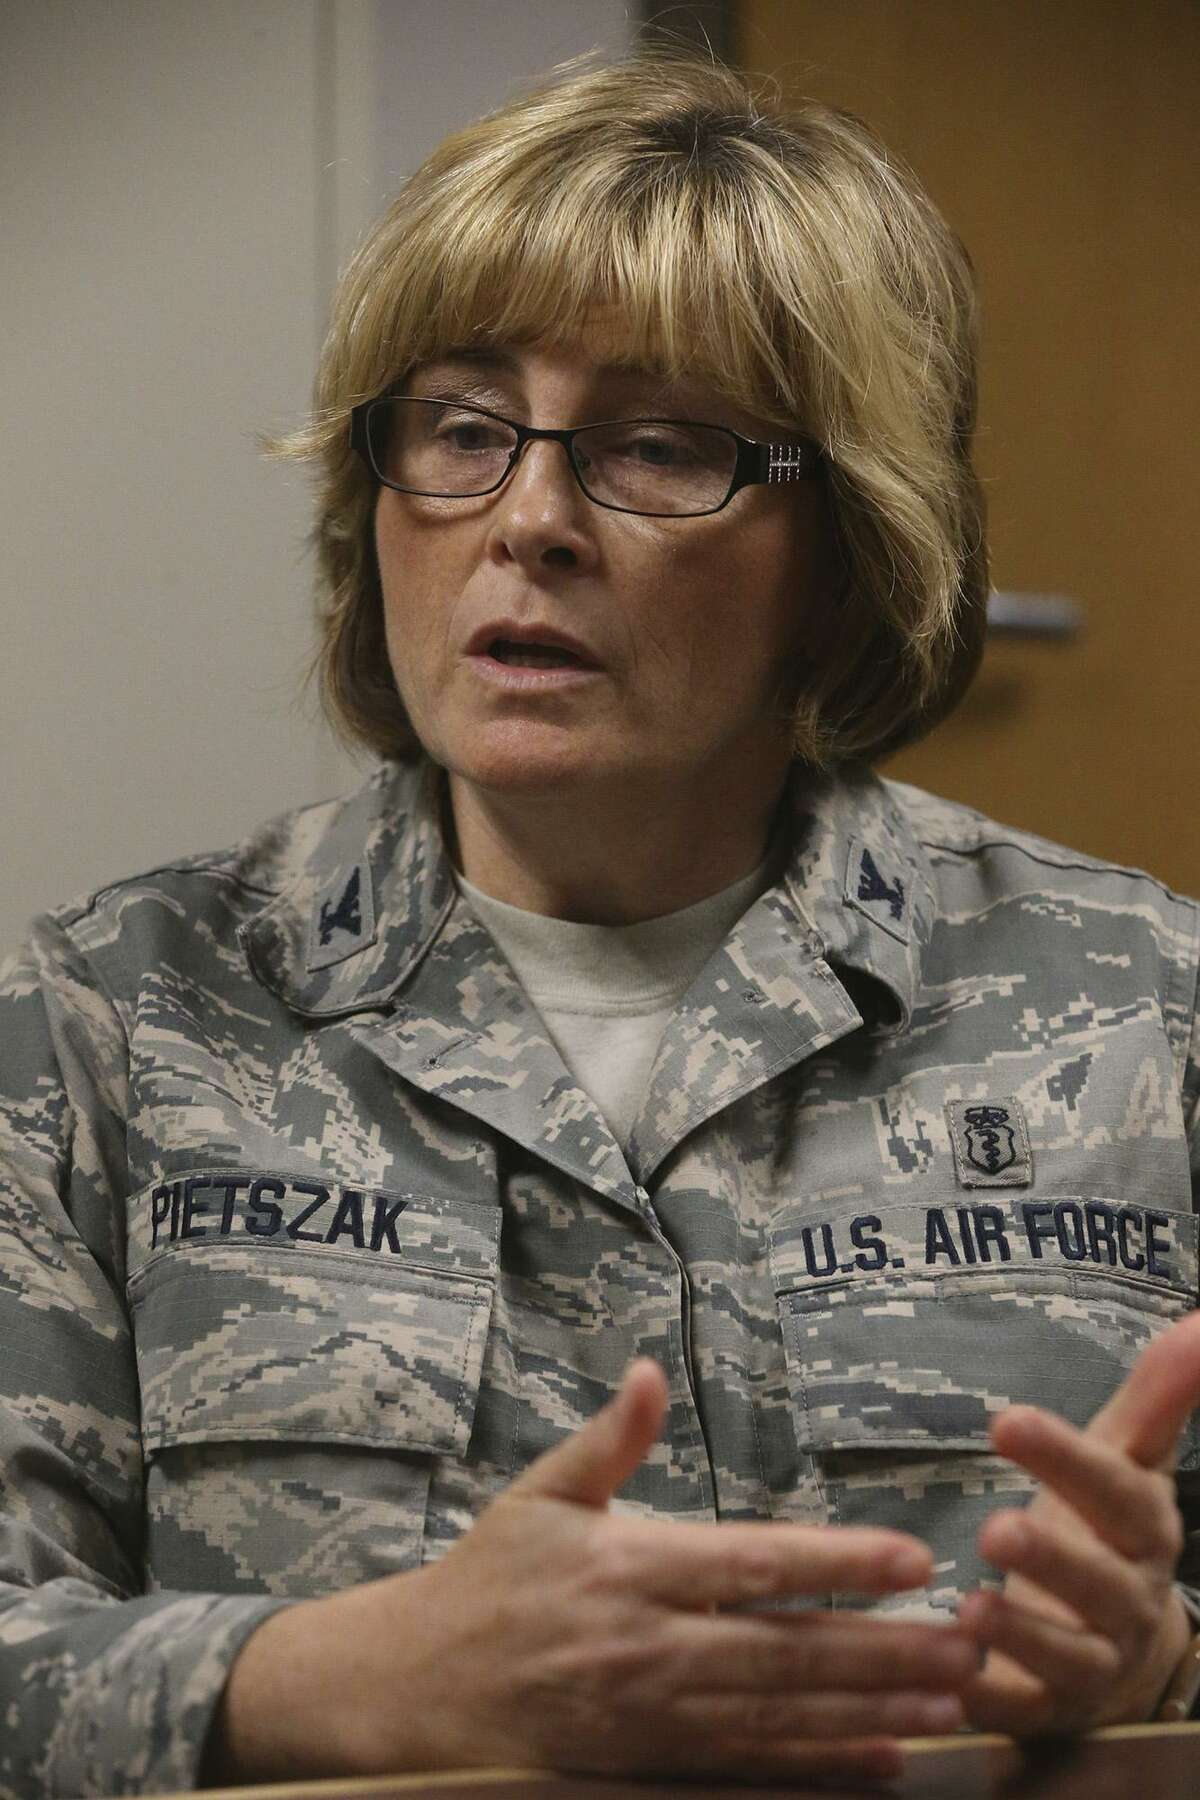 Air Force Colonel Kim Pietszak speaks Tuesday April 25, 2017 at JBSA-Fort Sam Houston, BAMC/Joint Base San Antonio San Antonio Military Medical Center hospital about sterility in the operating rooms. Pietzak is BAMC's deputy commander for quality and safety.